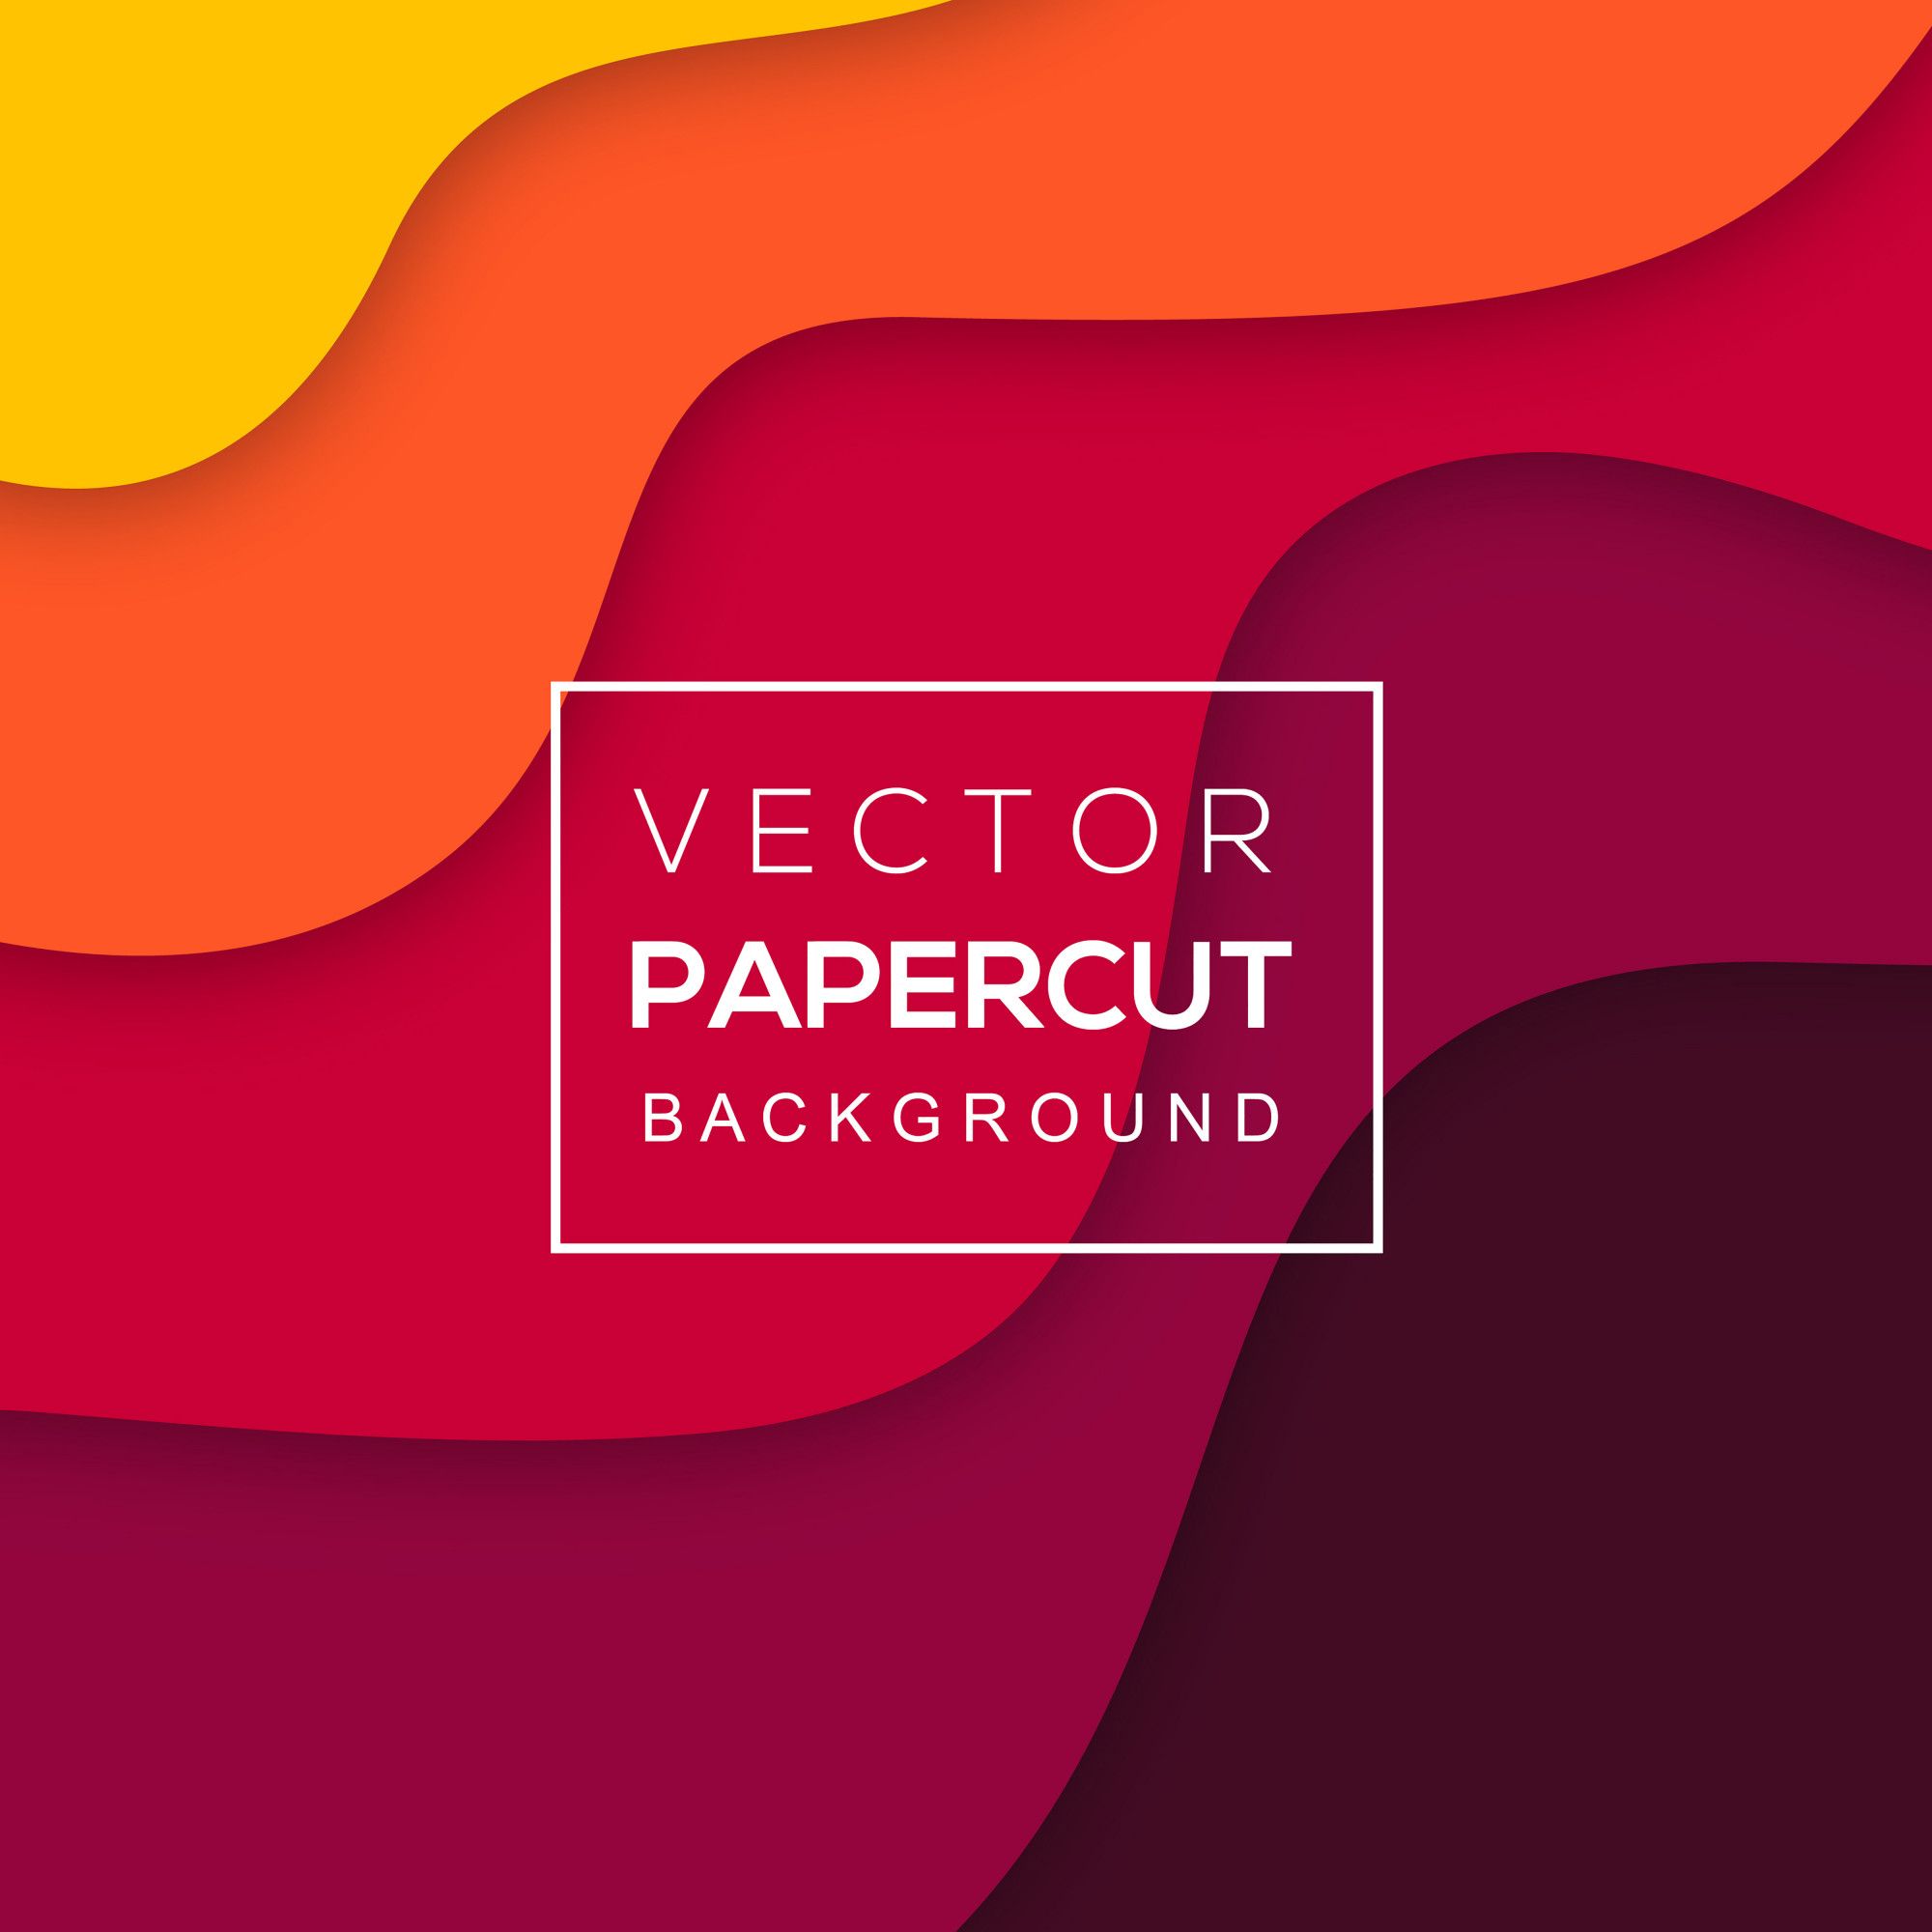 Colorful Vector Papercut Background